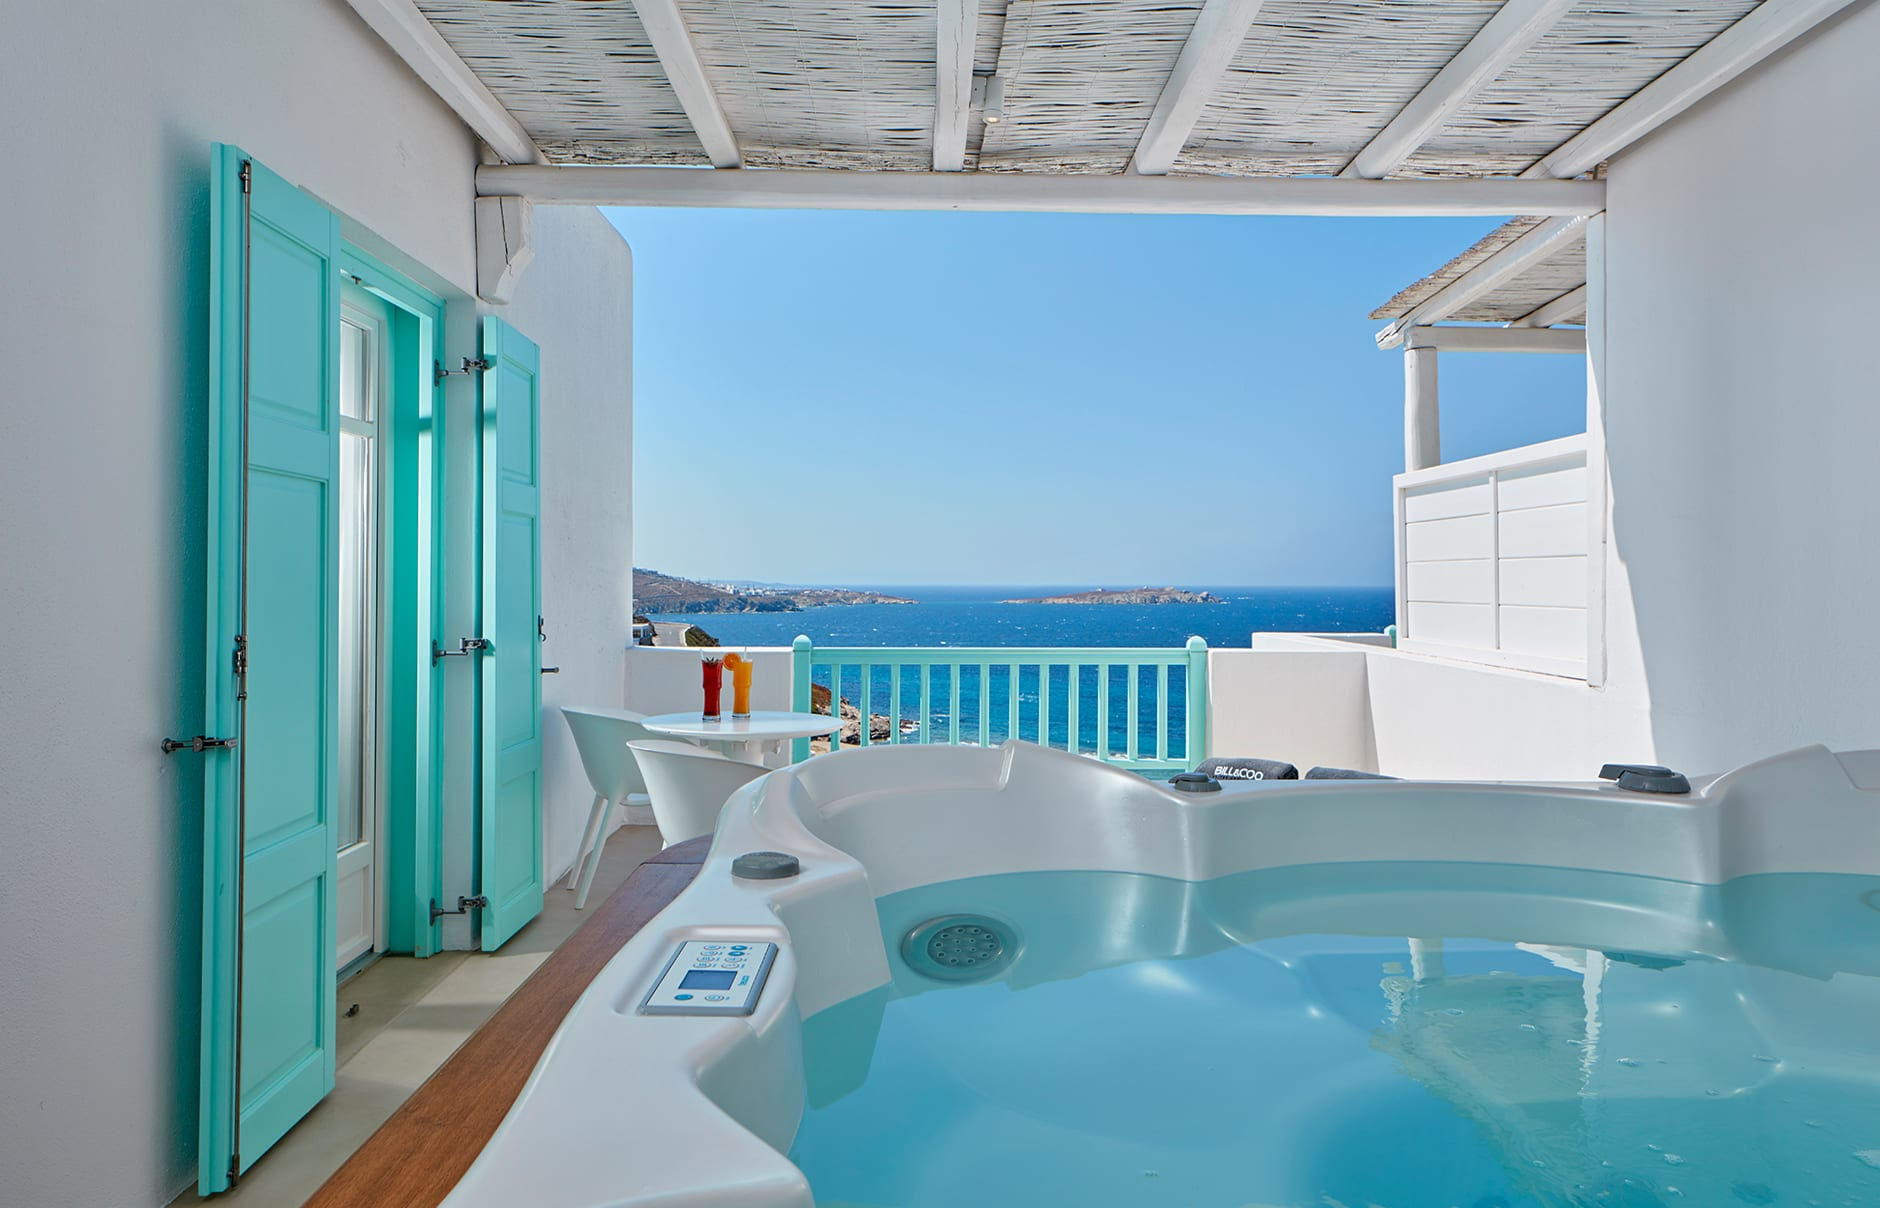 Executive Suite. Bill & Coo Mykonos, Greece. Hotel Review by TravelPlusStyle. Photo © Bill & Coo Mykonos